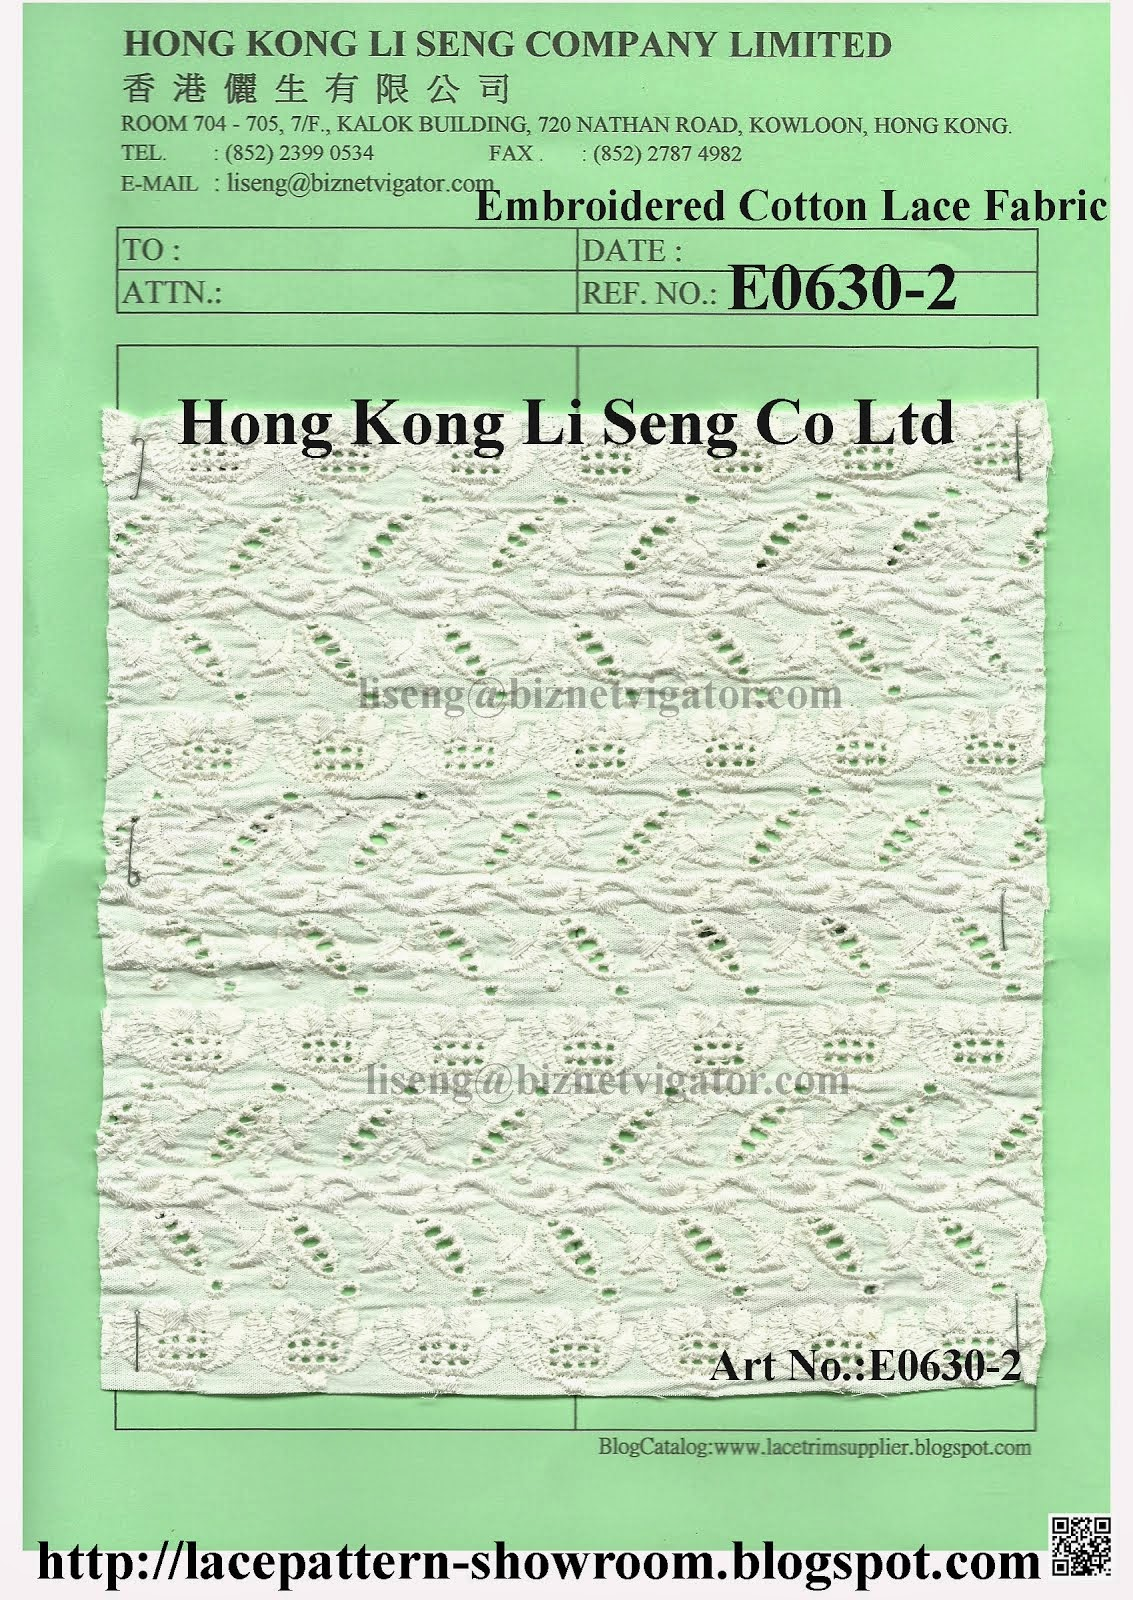 Embroidered Cotton Lace Fabric Manufacturer Wholesale and Supplier - Hong Kong Li Seng Co Ltd